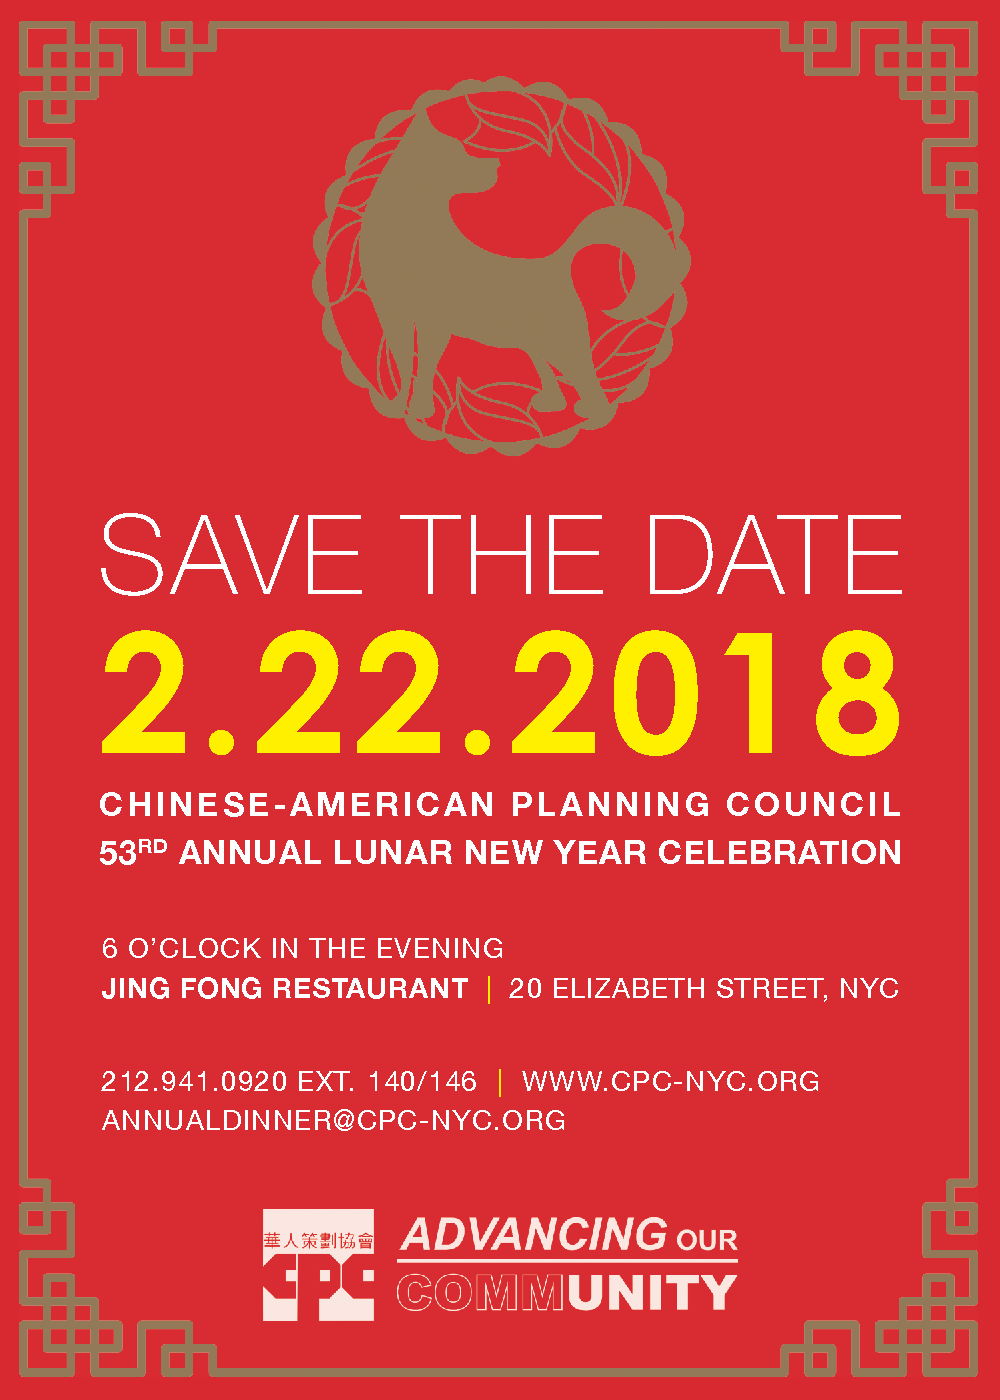 cpc lunar new year celebration 2018 chinese american planning - Whens Chinese New Year